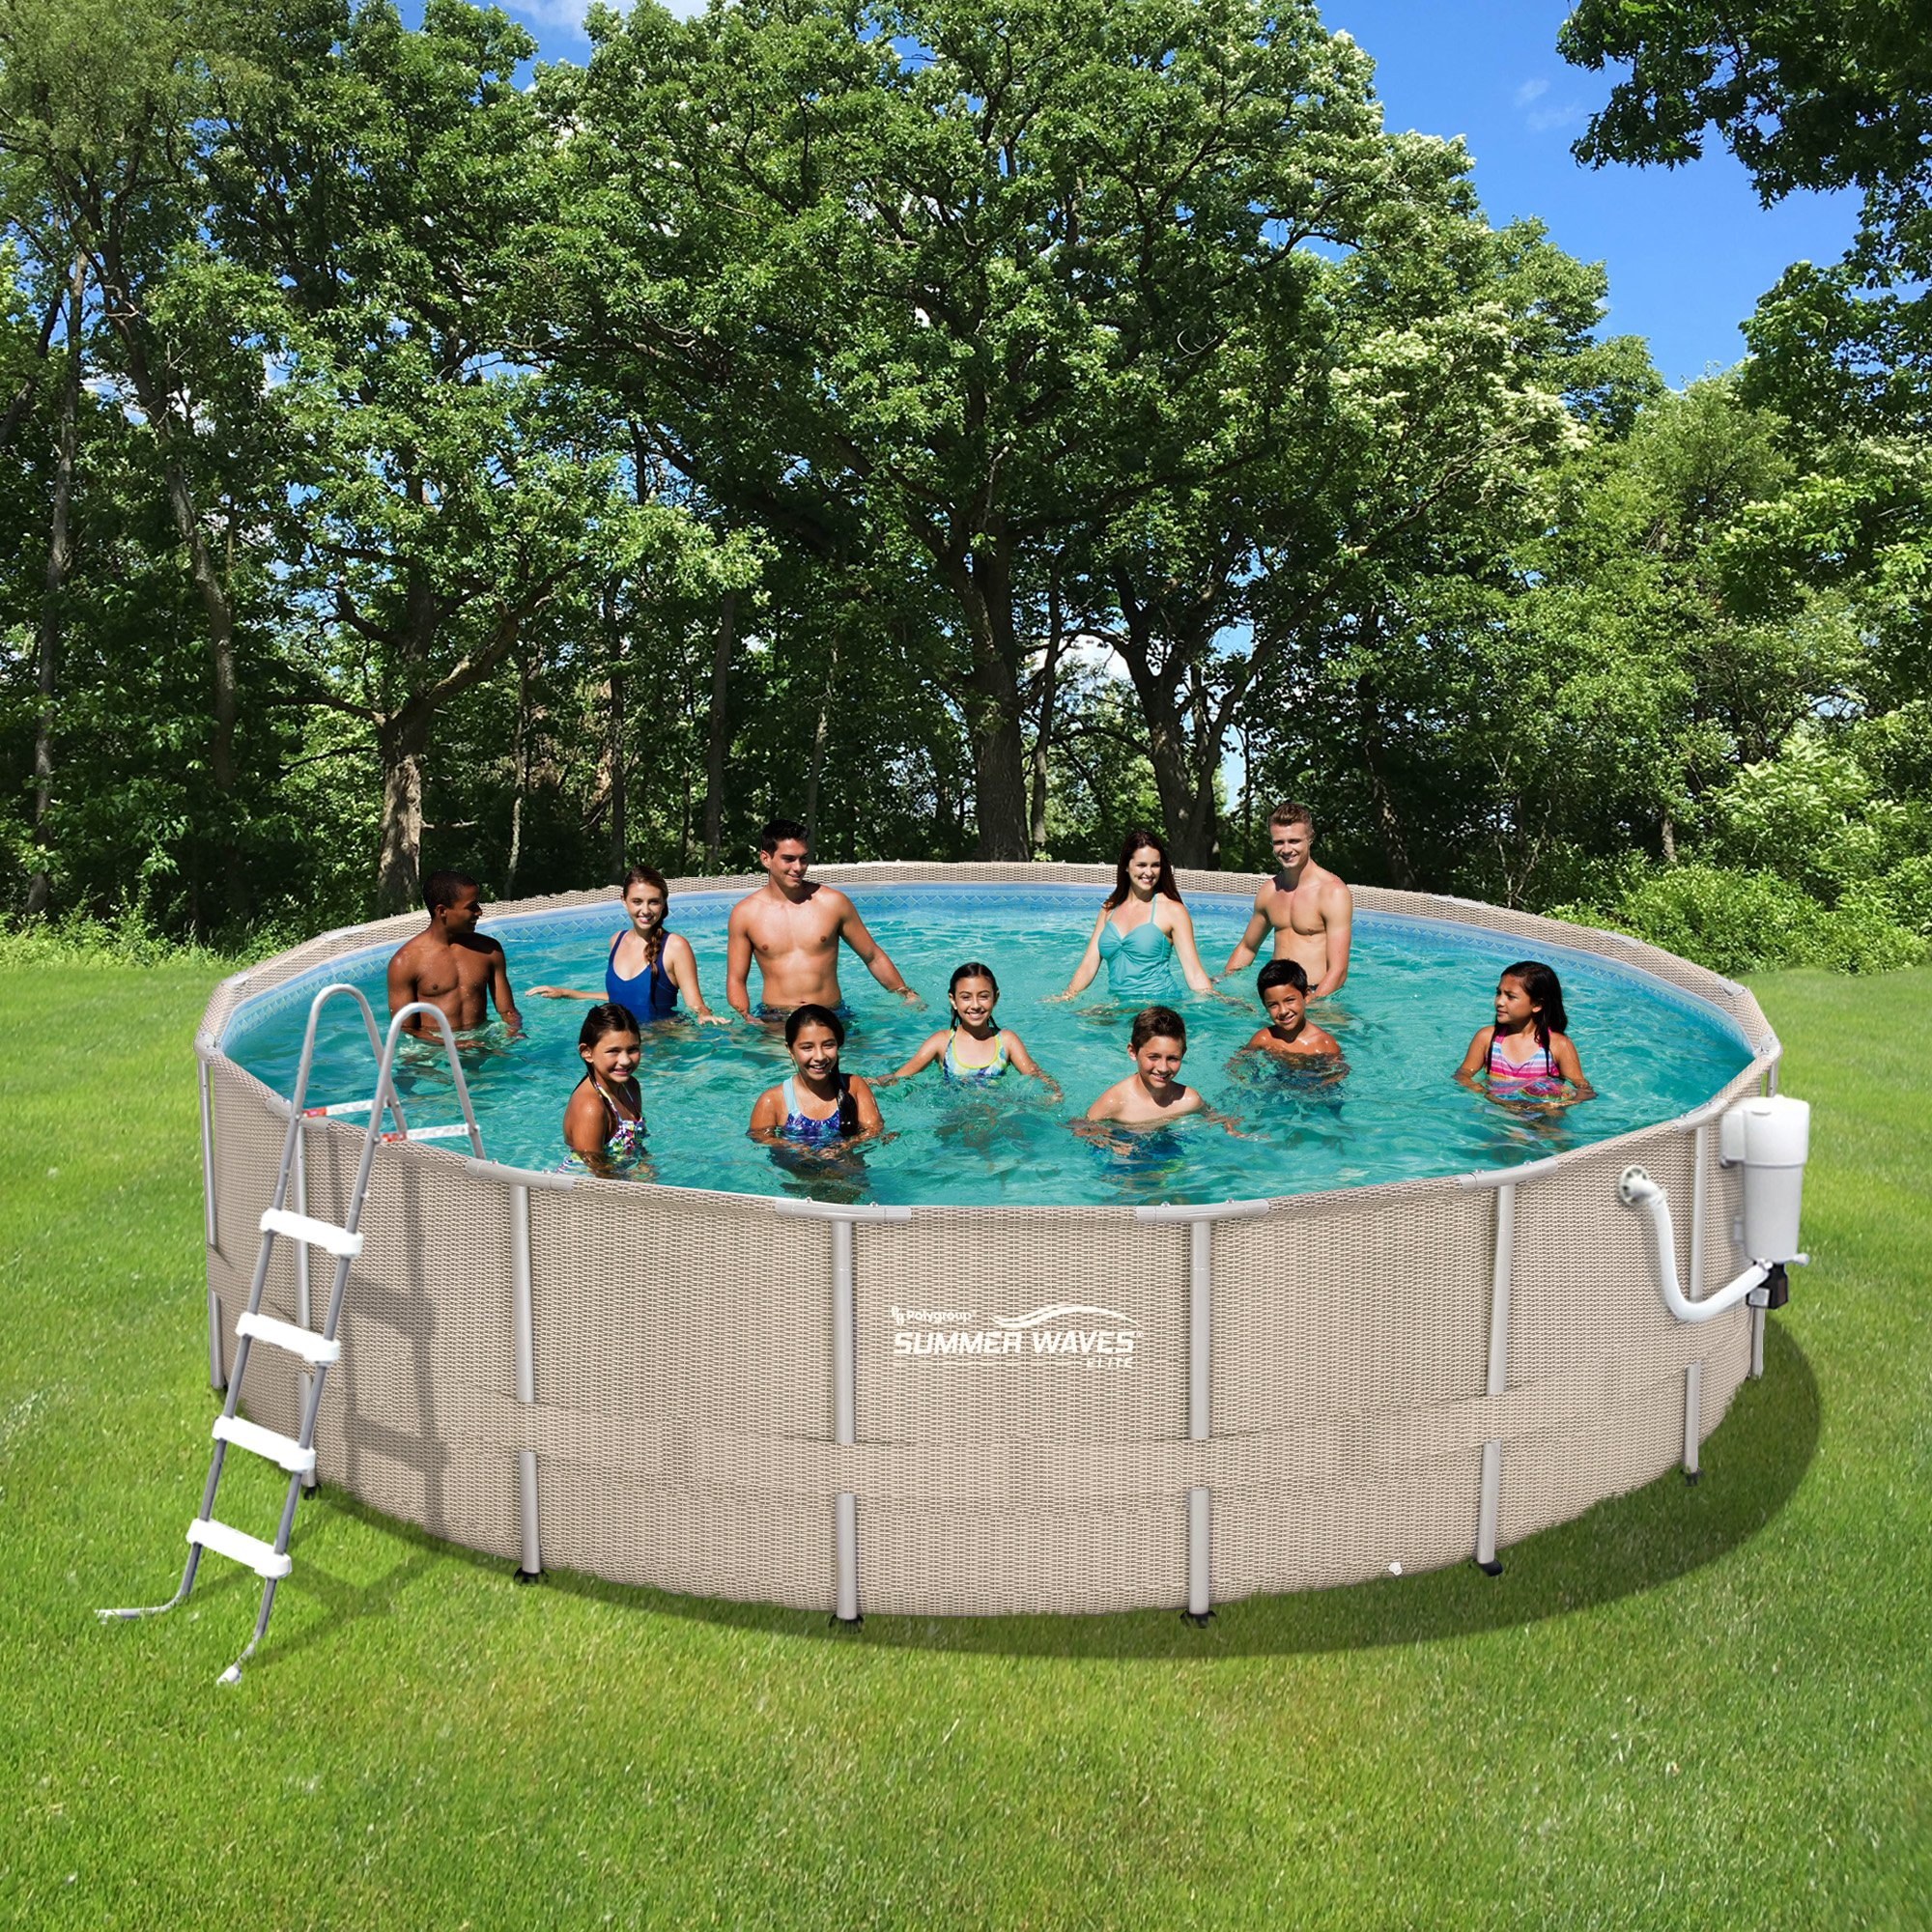 Pool Package Light Wicker 18' Round Metal Frame 52'' Deep | Summer Waves NB2232 by Summer Waves Elite